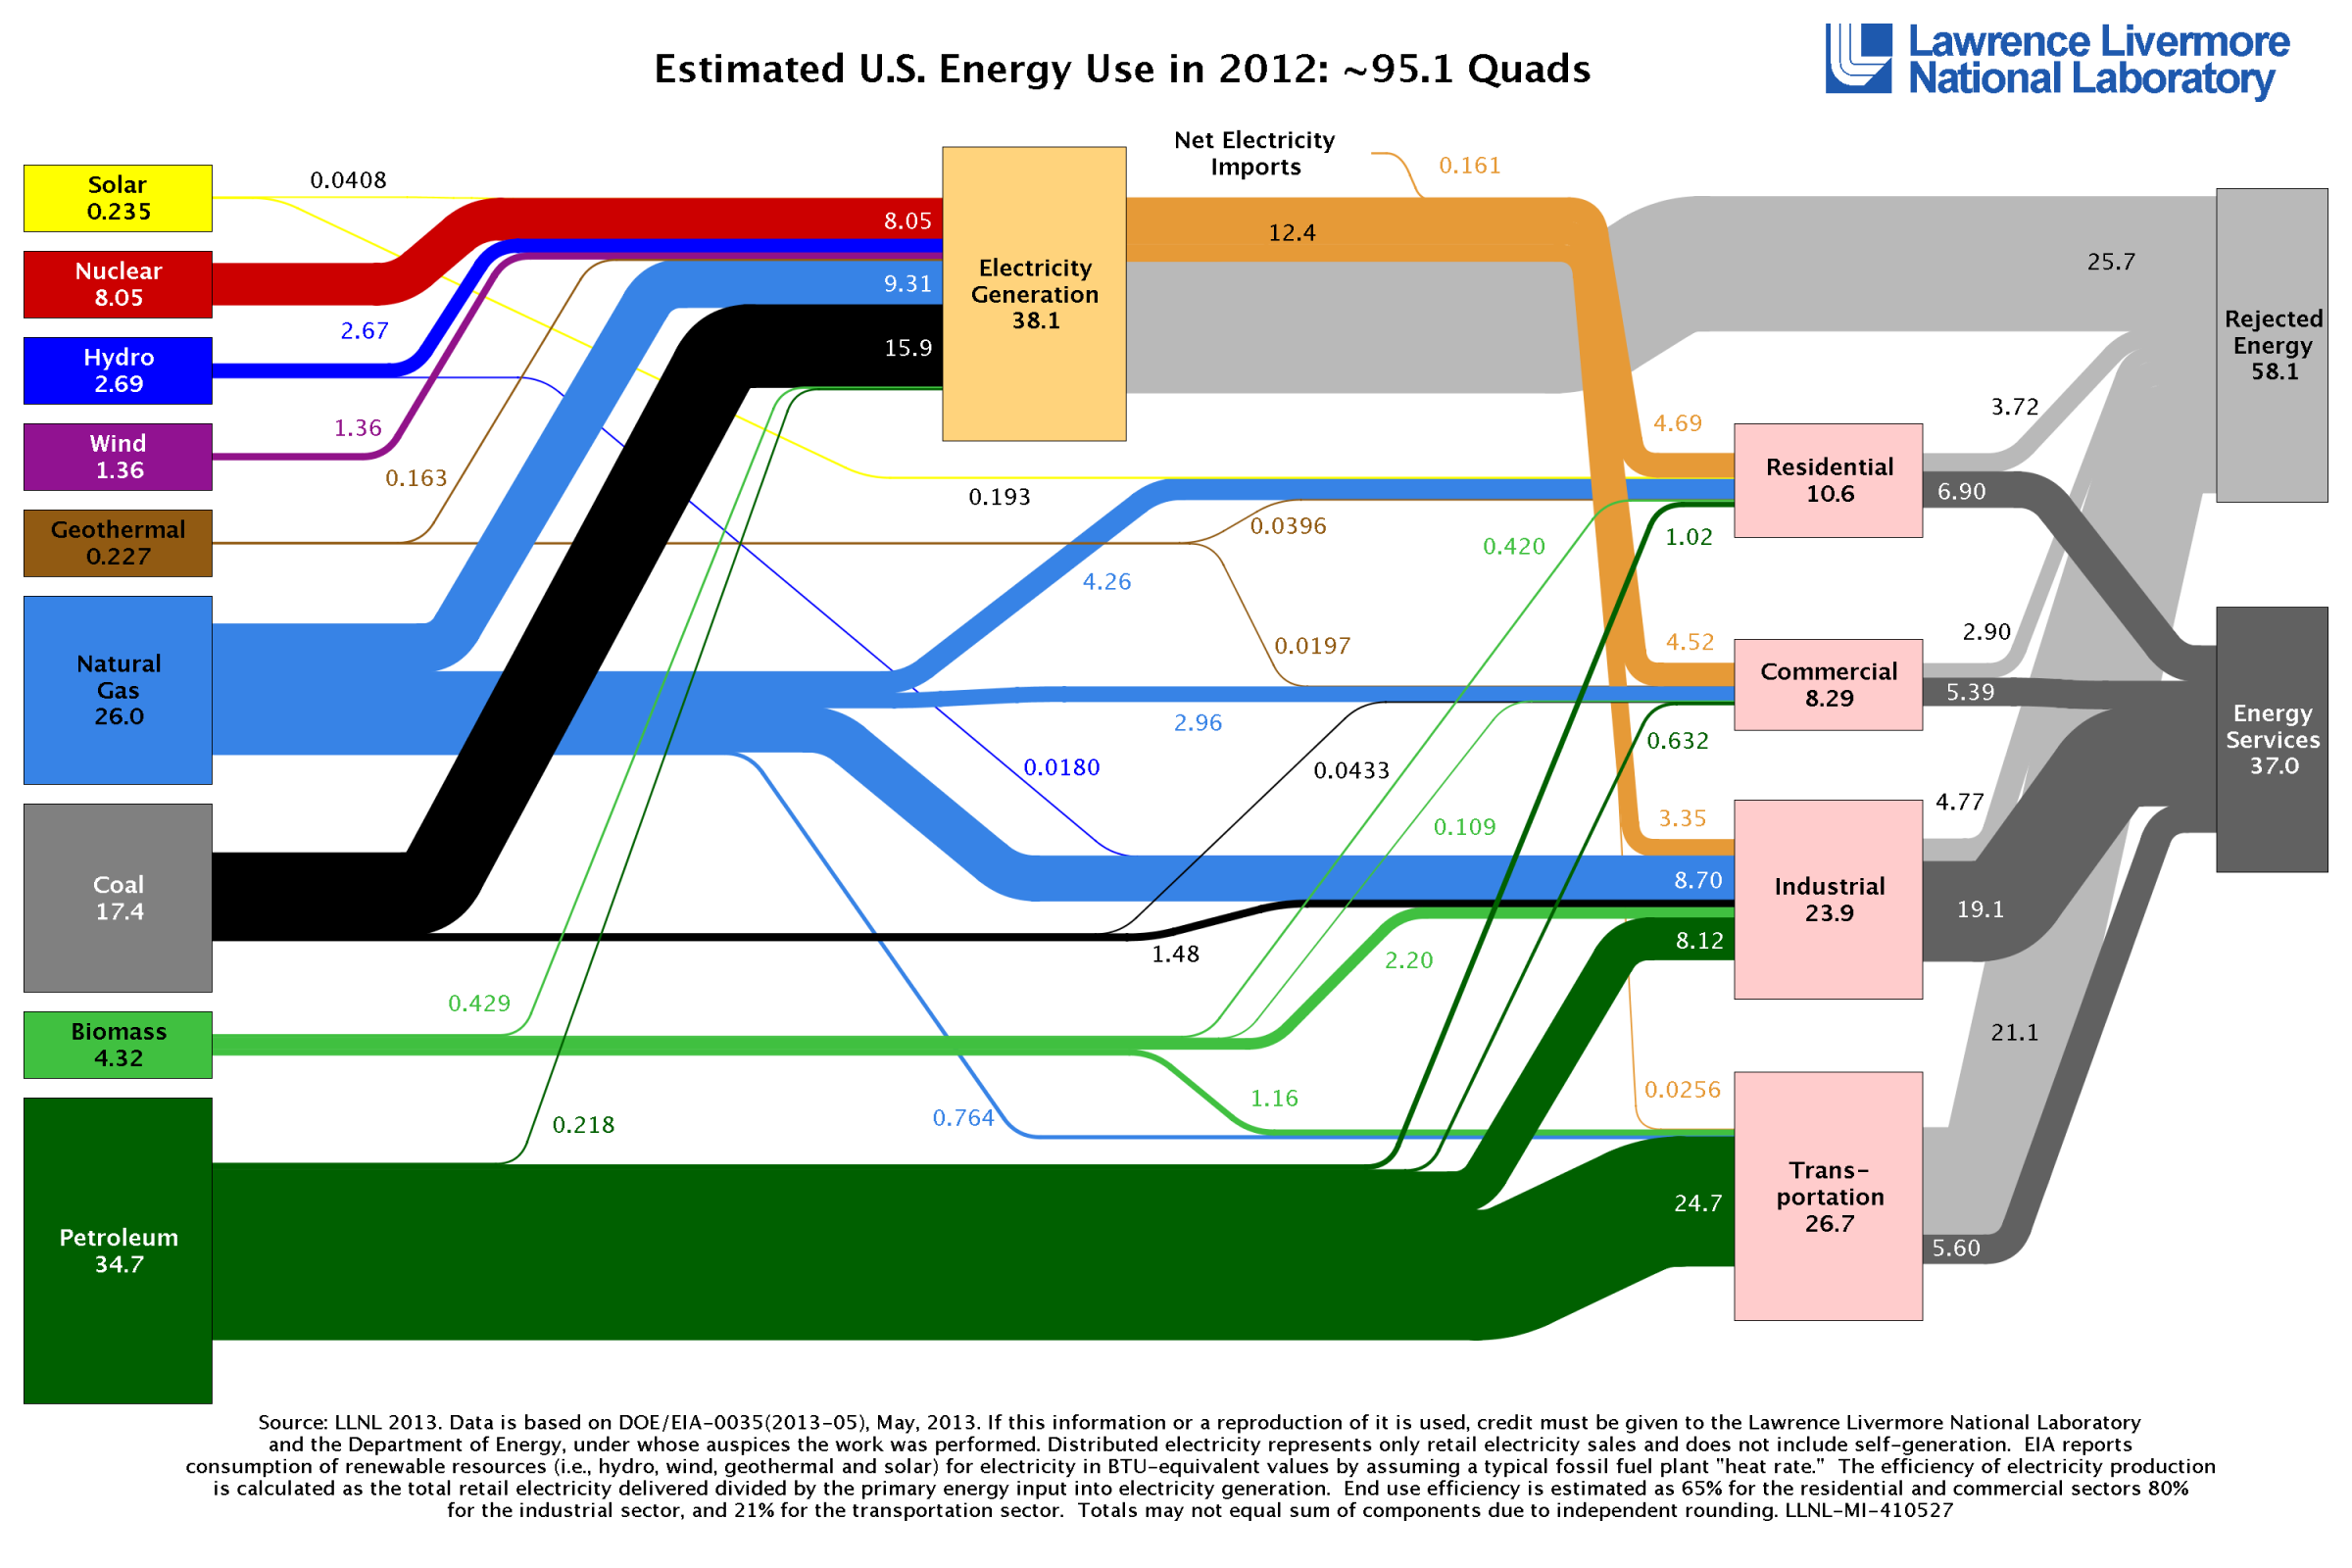 Renewable energy use continues to rise michigan radio the 2012 energy flow chart released by lawrence livermore national laboratory details the sources of energy production how americans are using energy and nvjuhfo Image collections